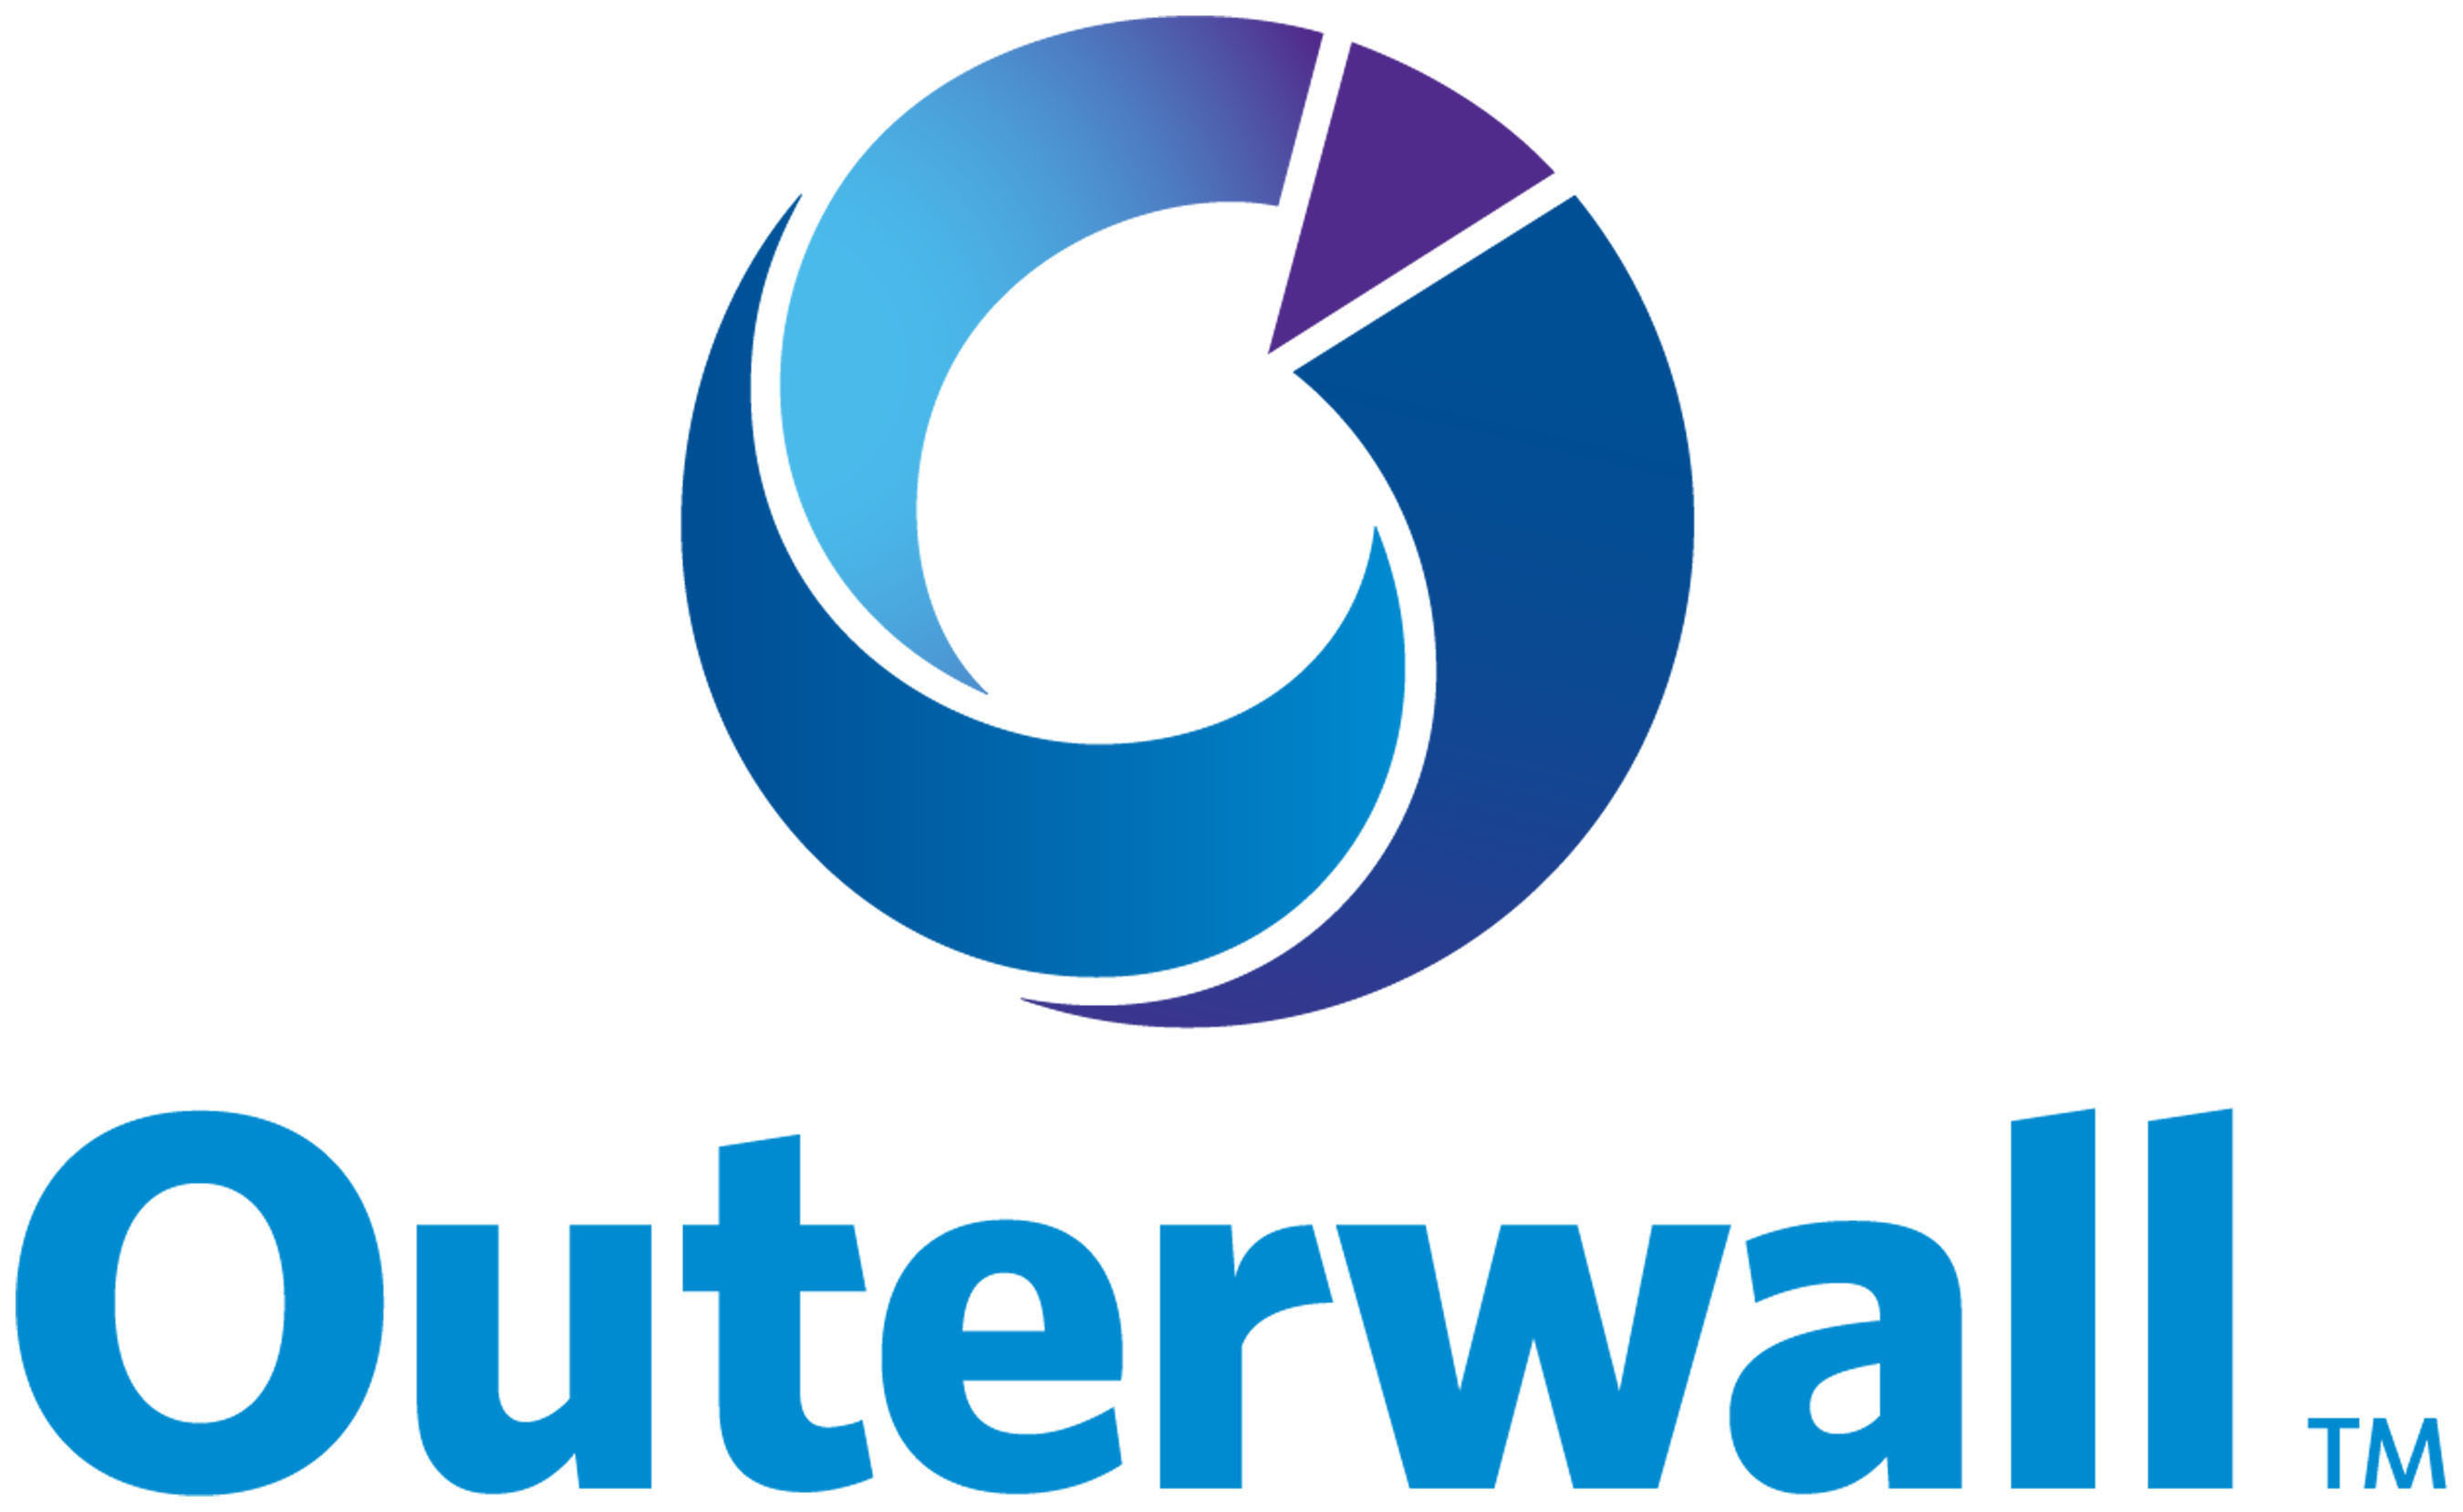 Outerwall Inc. to Report 2015 Fourth Quarter and Full Year Financial Results on February 4, 2016